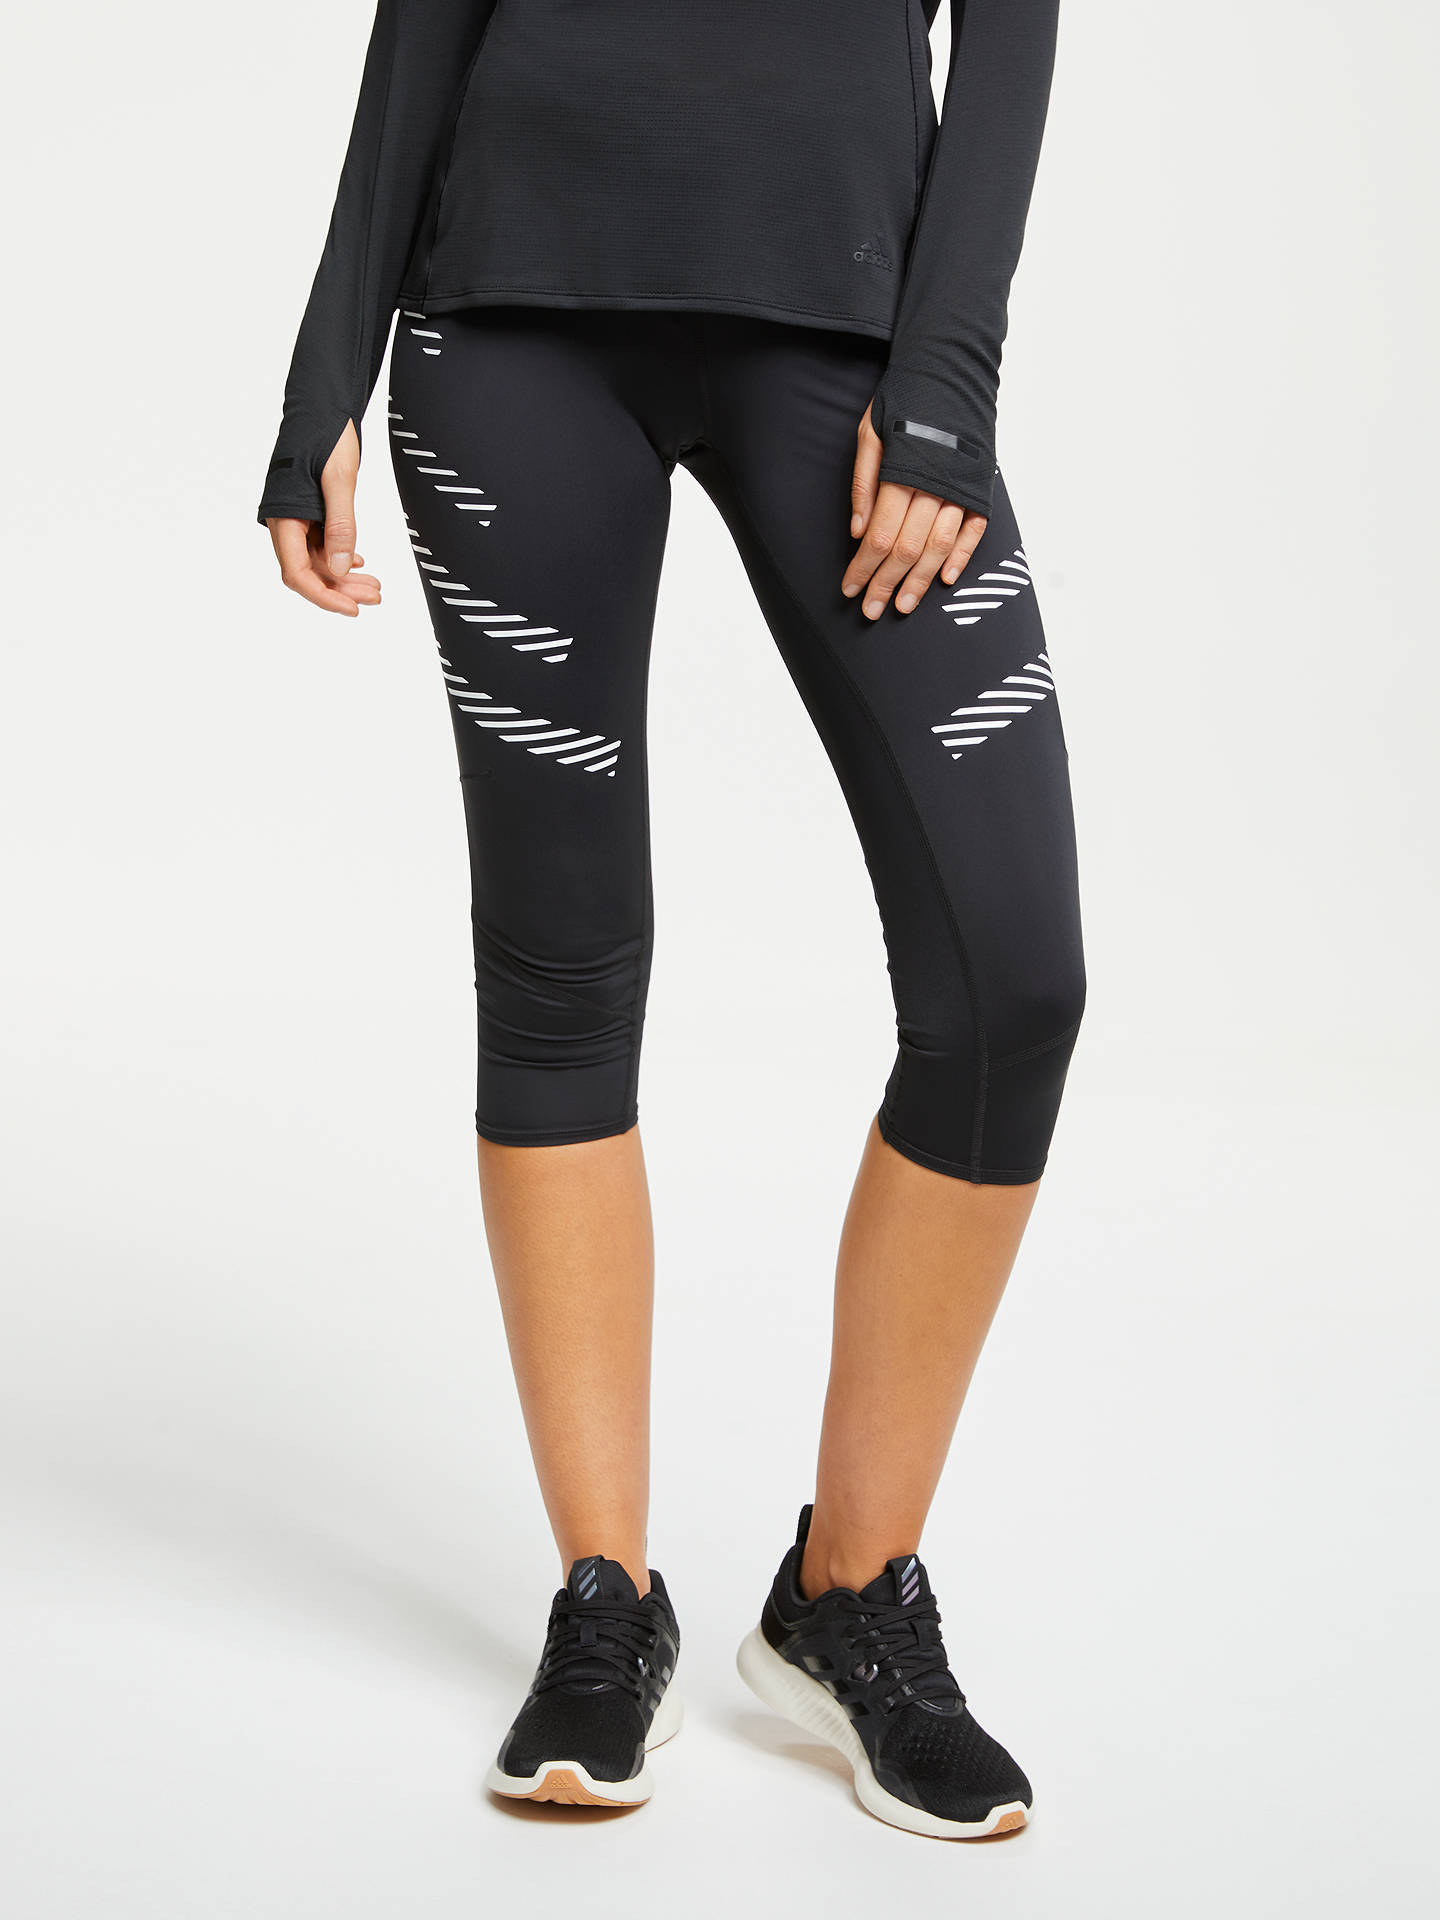 092a1c550e7 adidas How We Do 3/4 Running Tights, Black/White at John Lewis ...